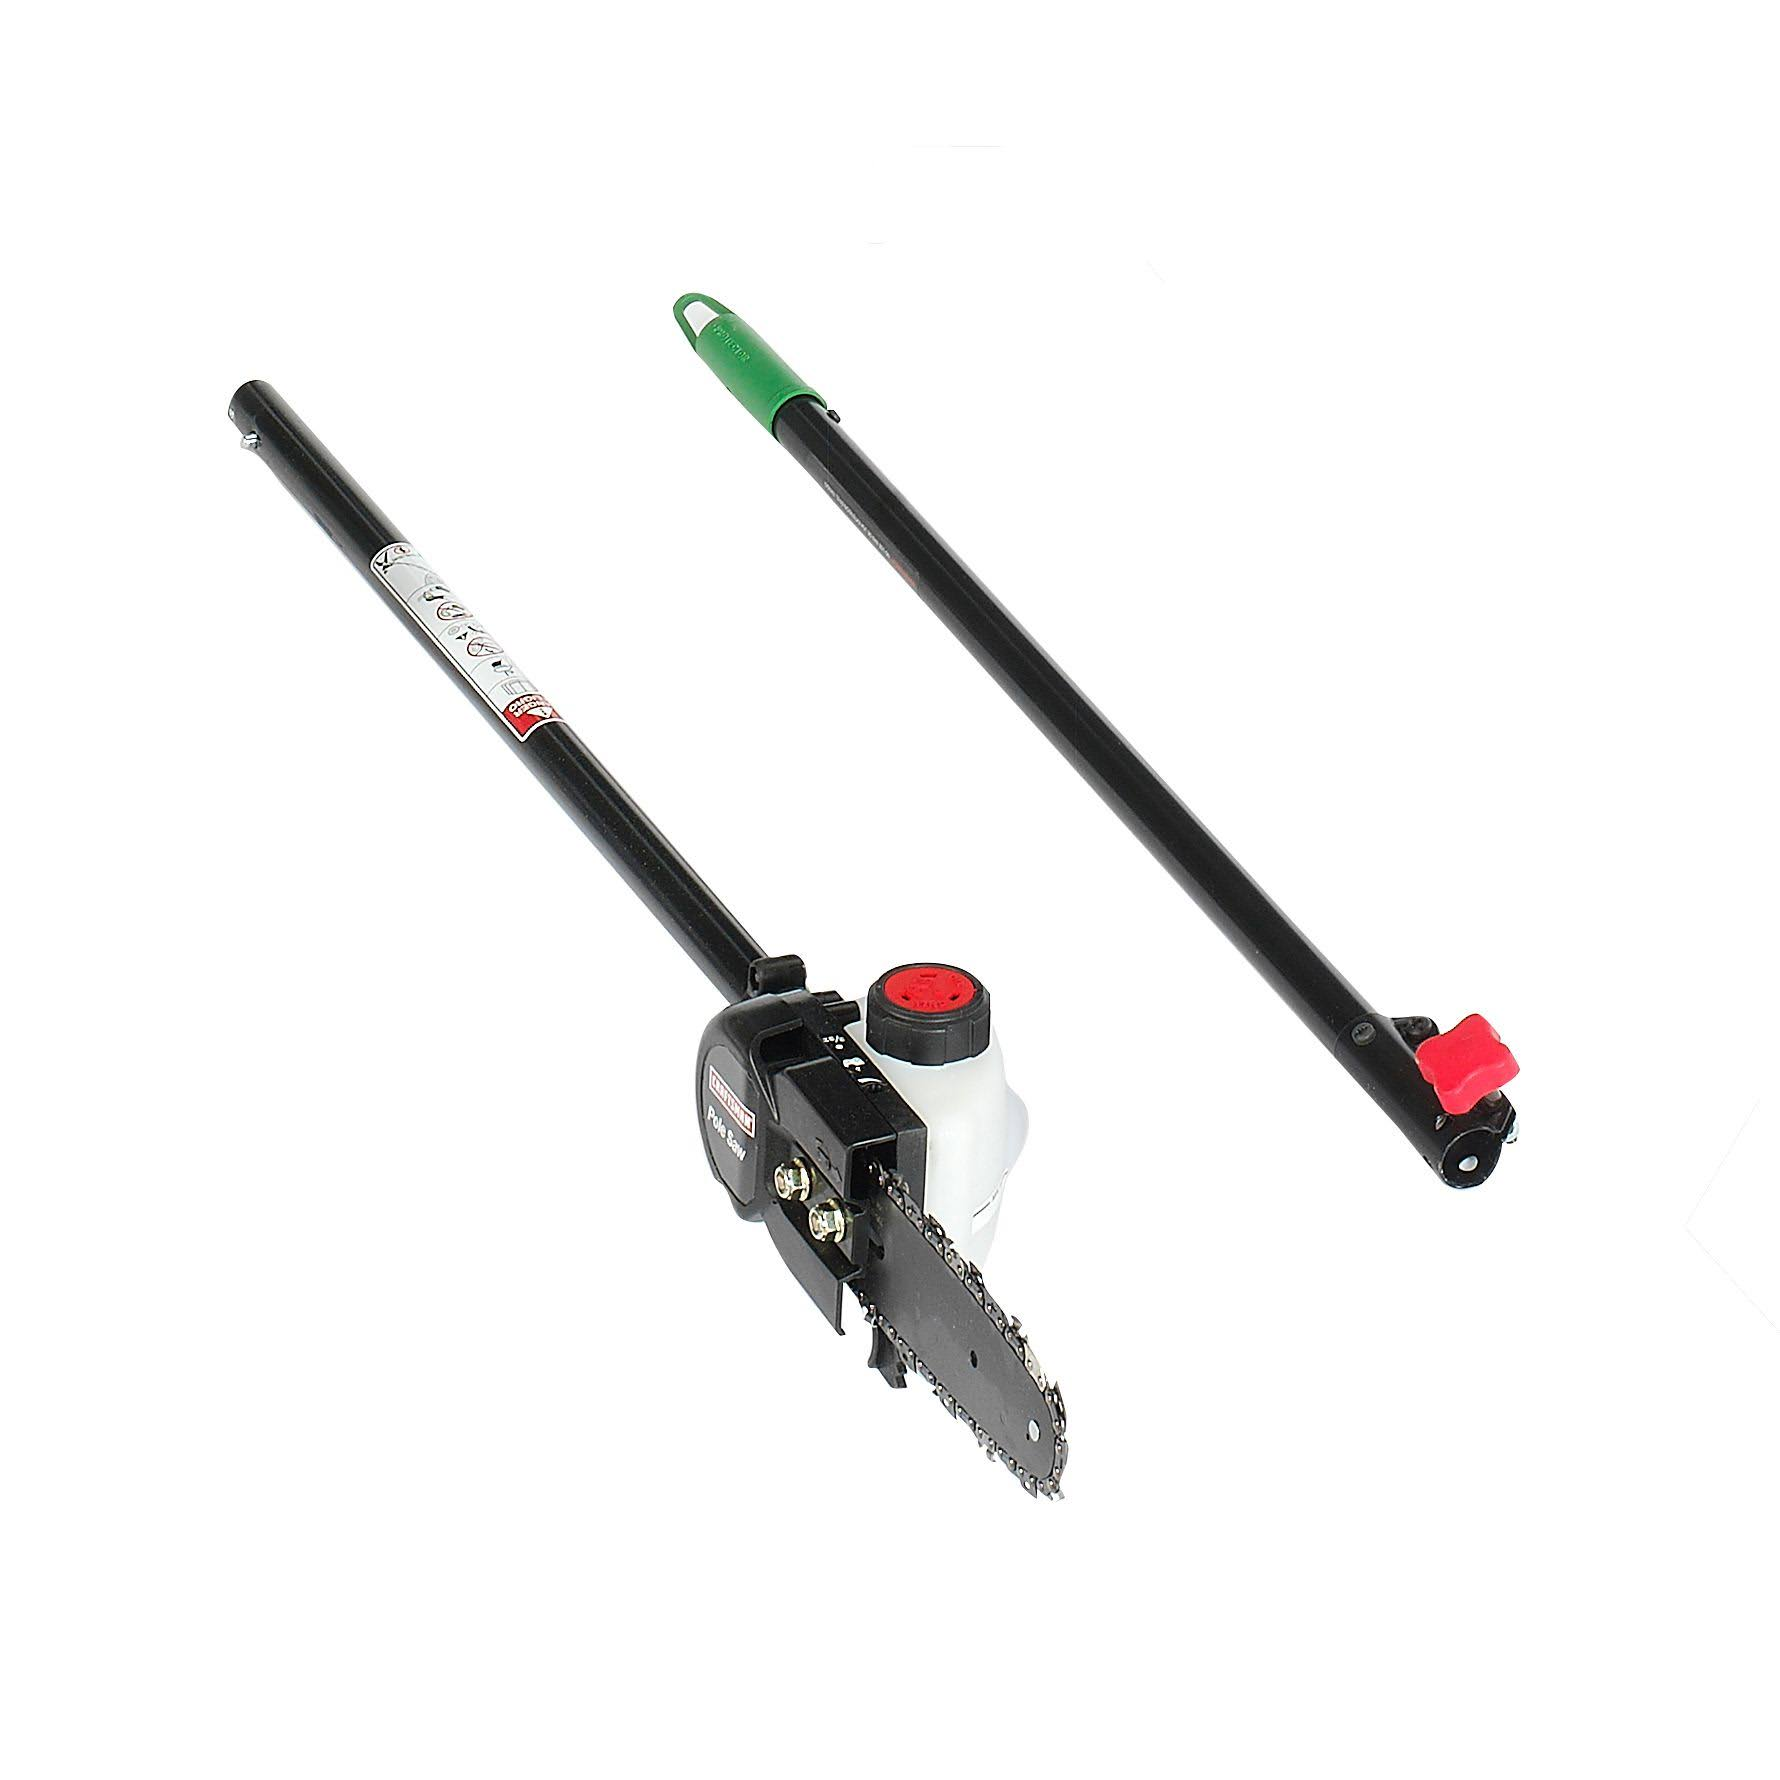 Craftsman 79246 Pole Saw Attachment - for Gas Trimmers, 11'